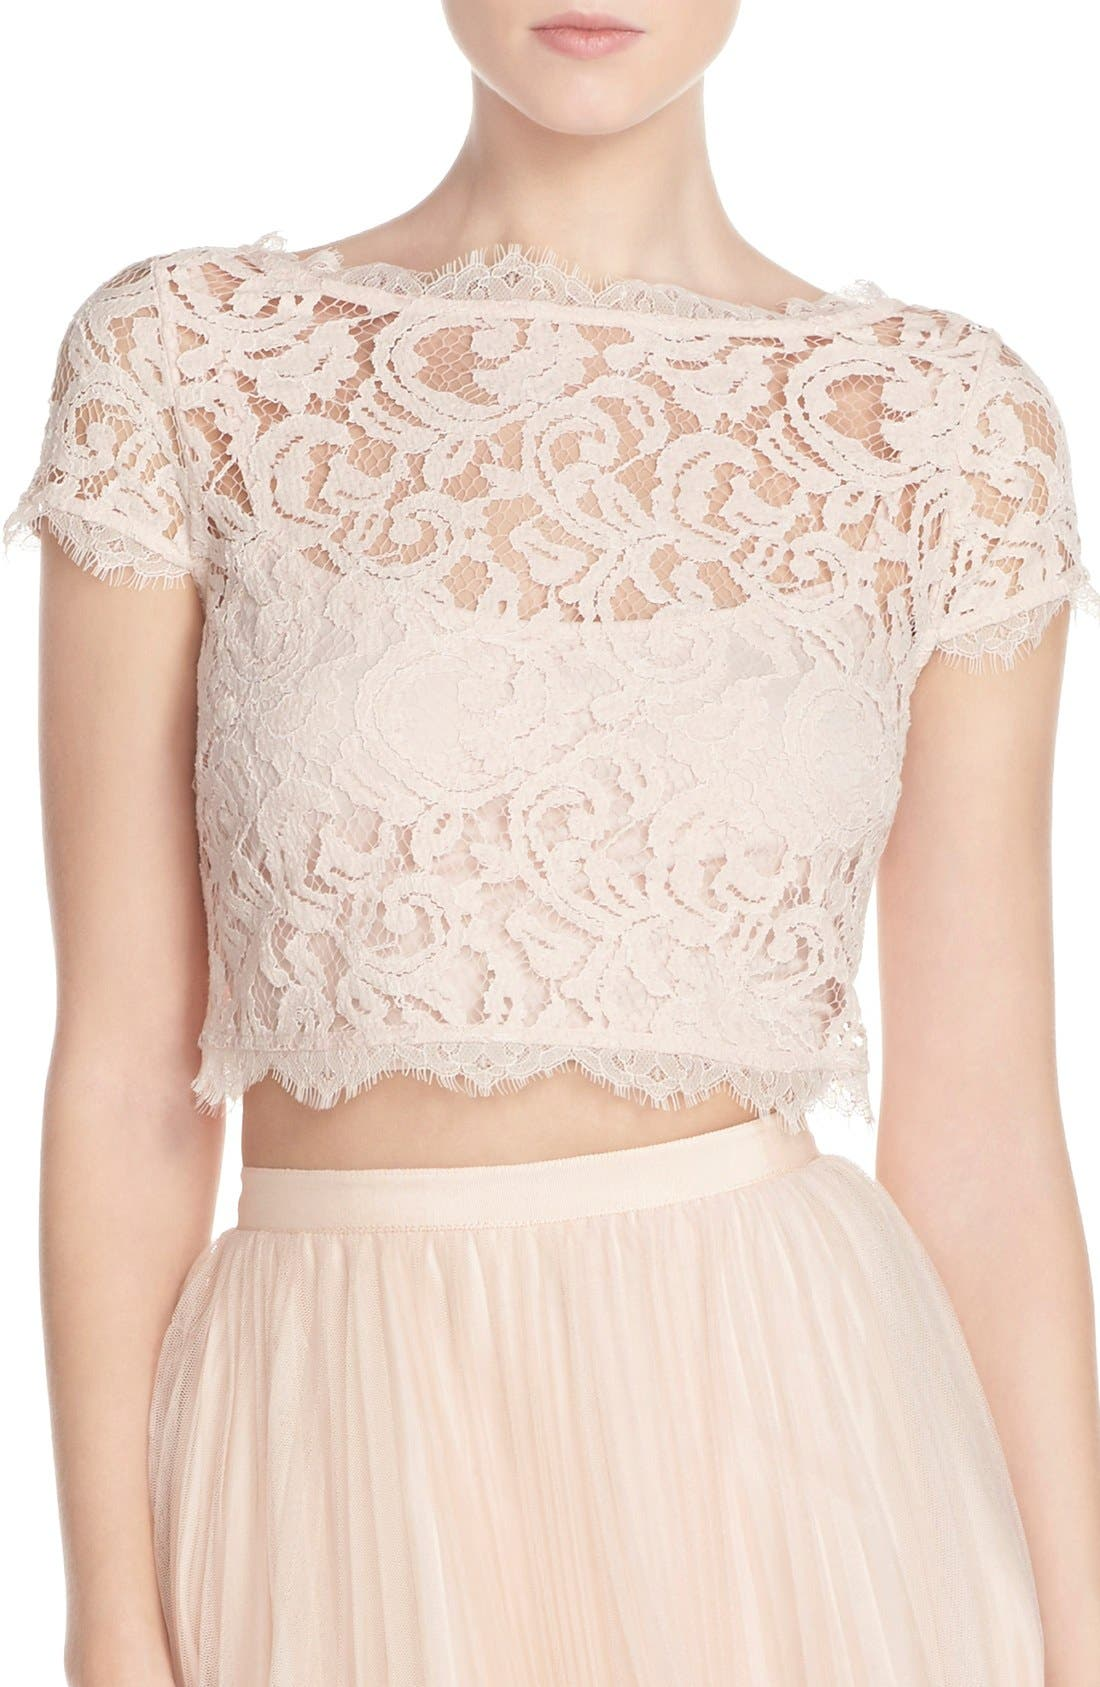 Alternate Image 1 Selected - Adrianna Papell Lace Crop Top